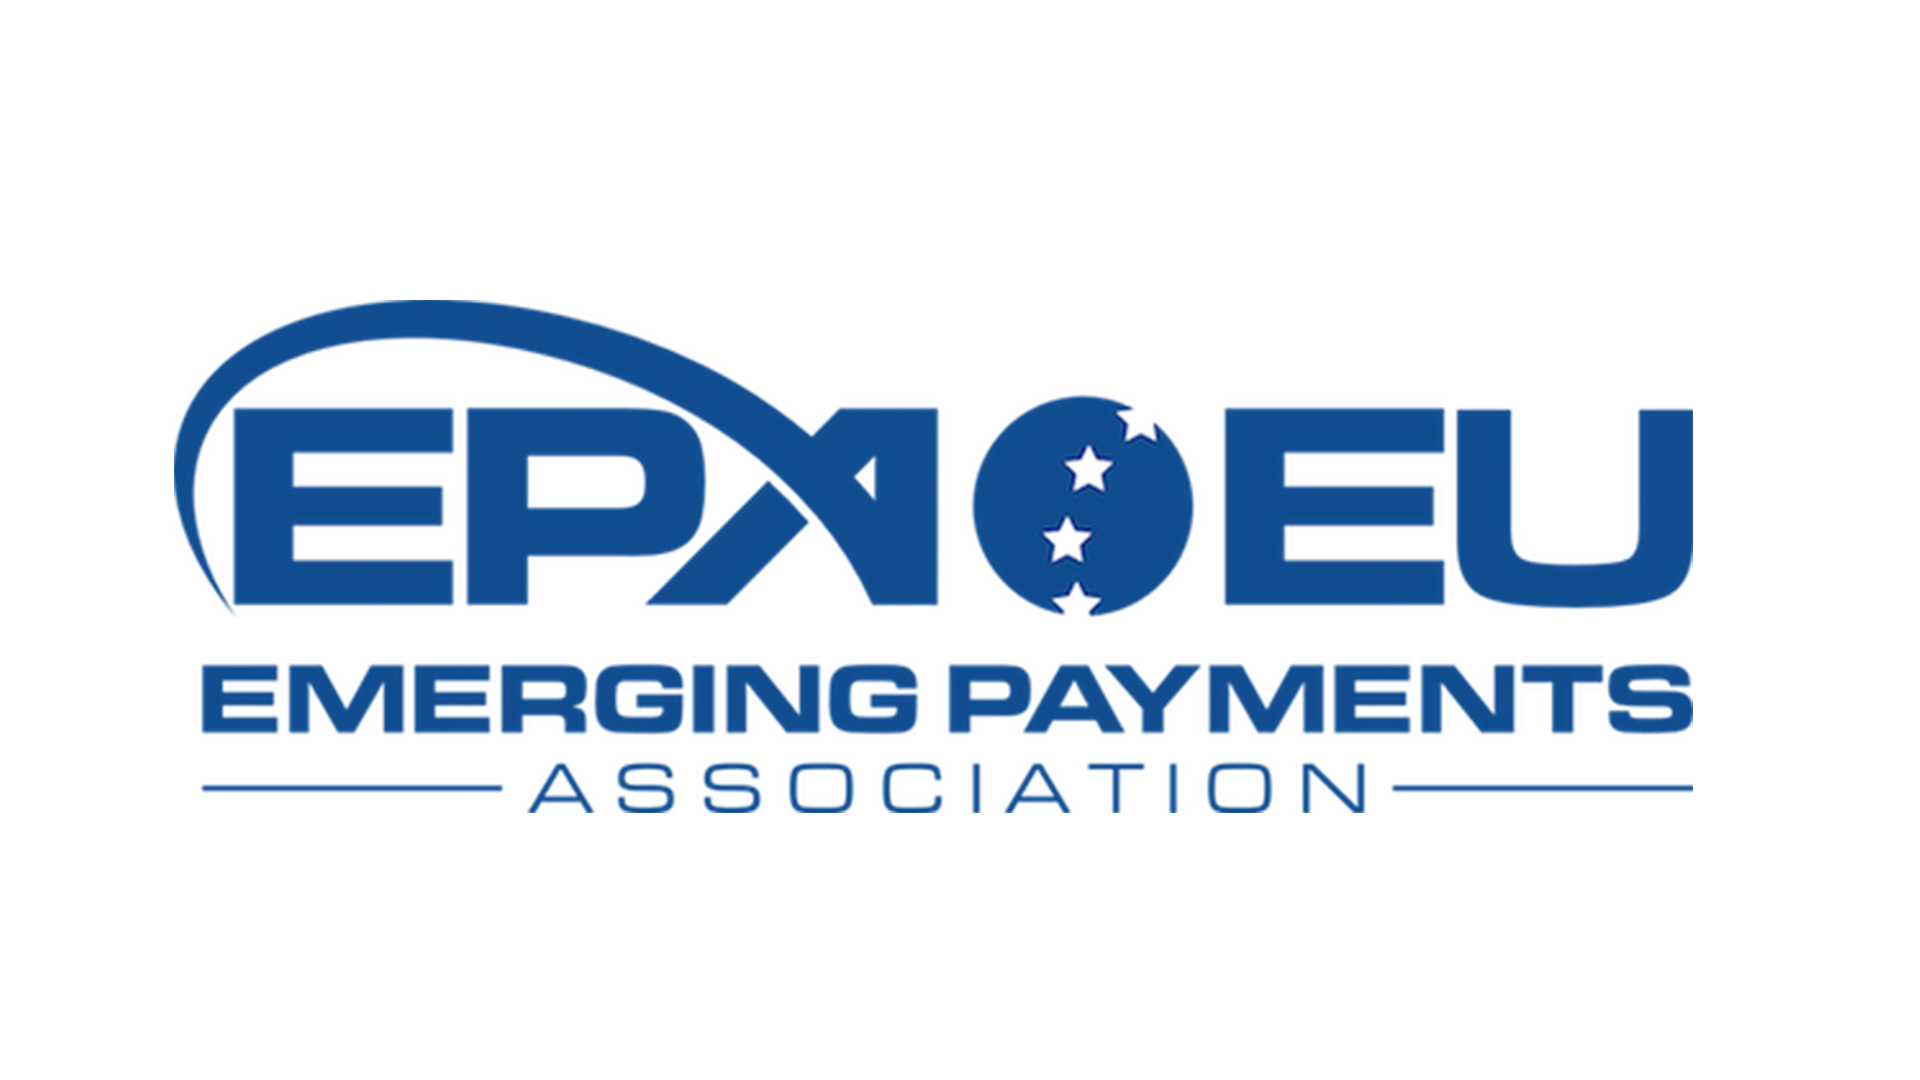 The Emerging Payments Association EU Exponentially Grows Its Membership Base With Glue Up